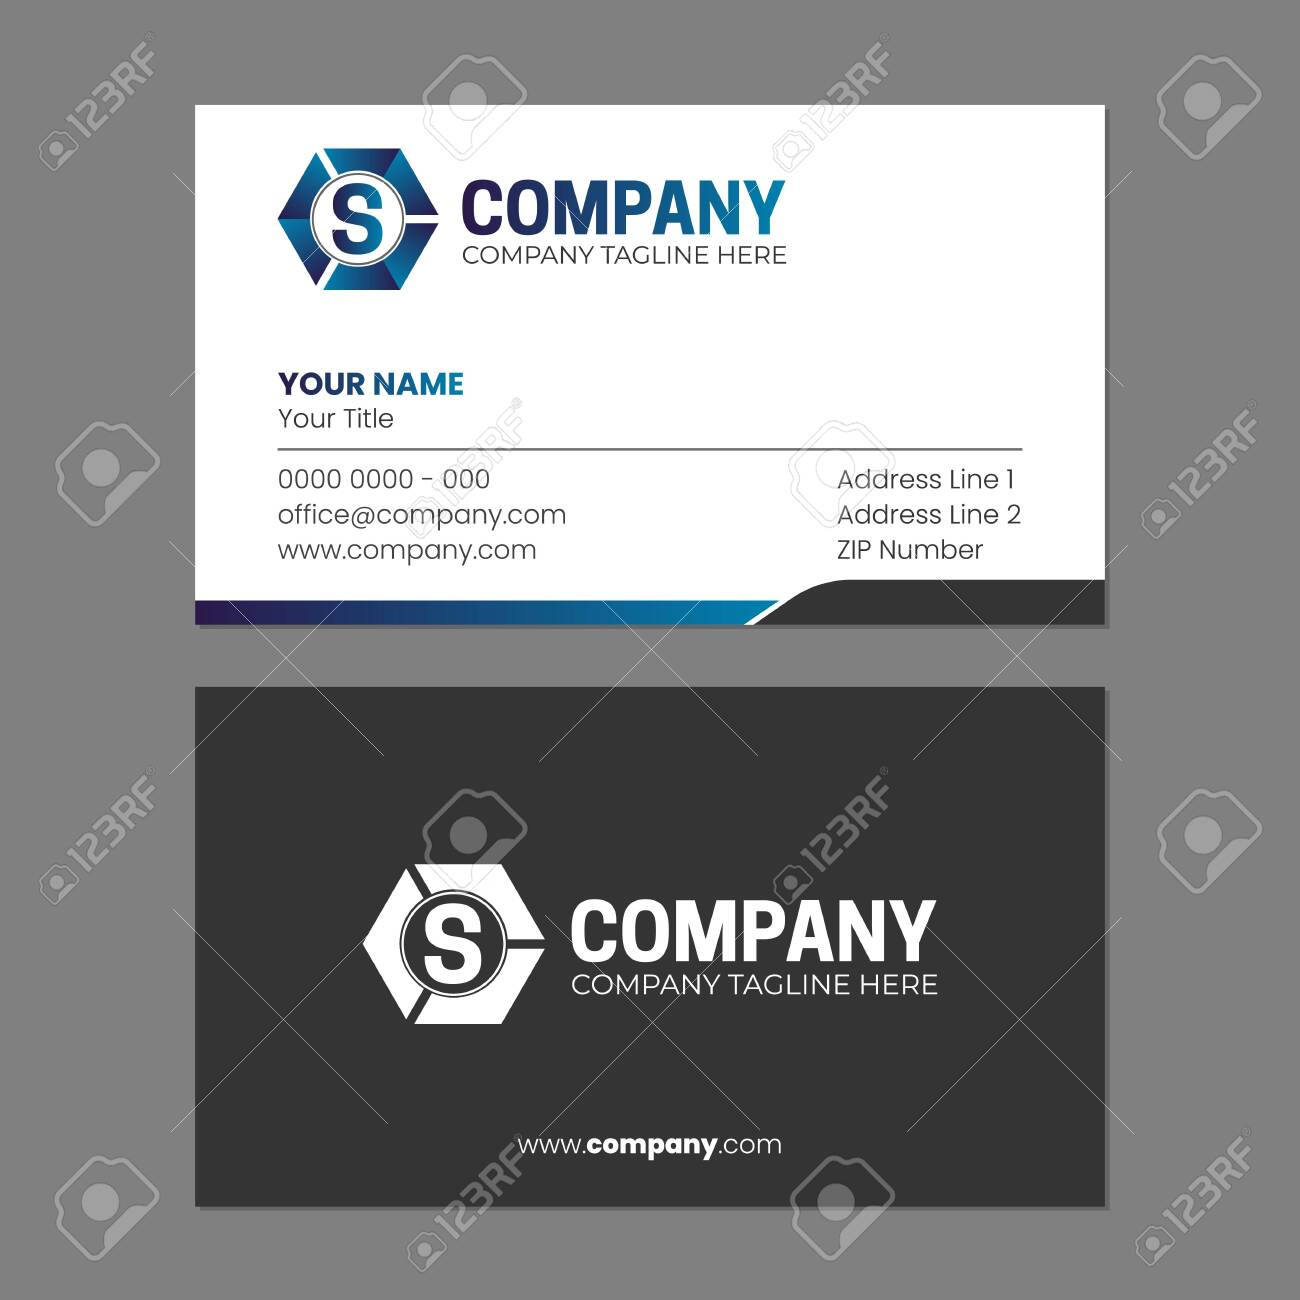 Initial Abstract and Business Card Design Template - 147356261